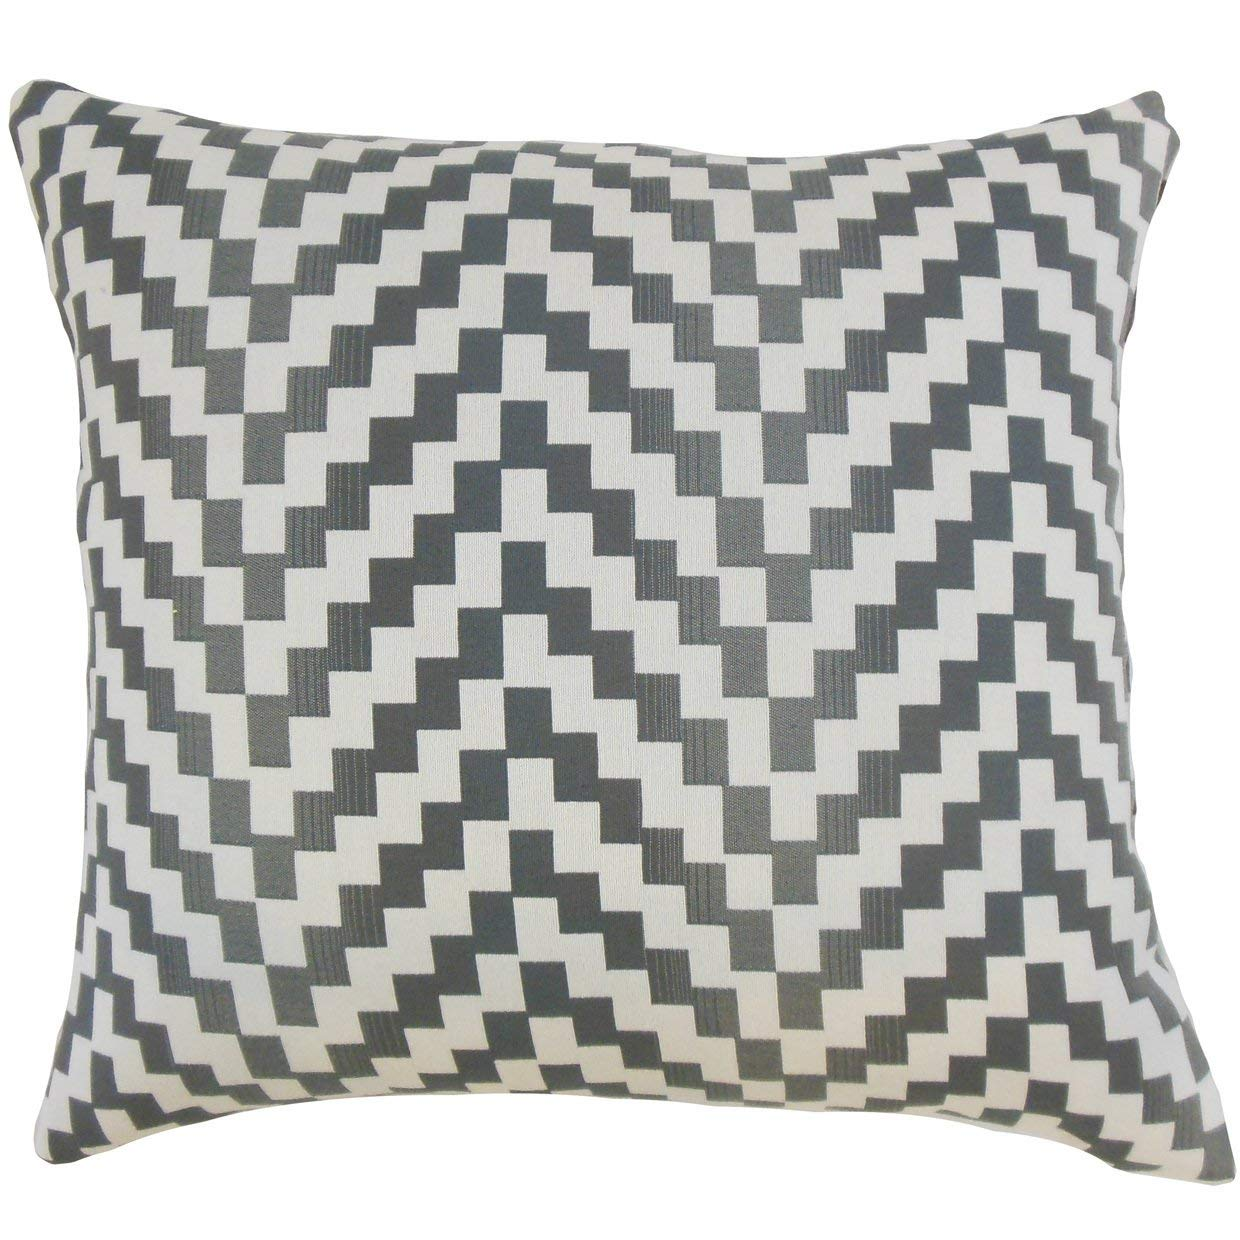 The Pillow Collection Dhiren Geometric Zinc Down Filled Throw Pillow